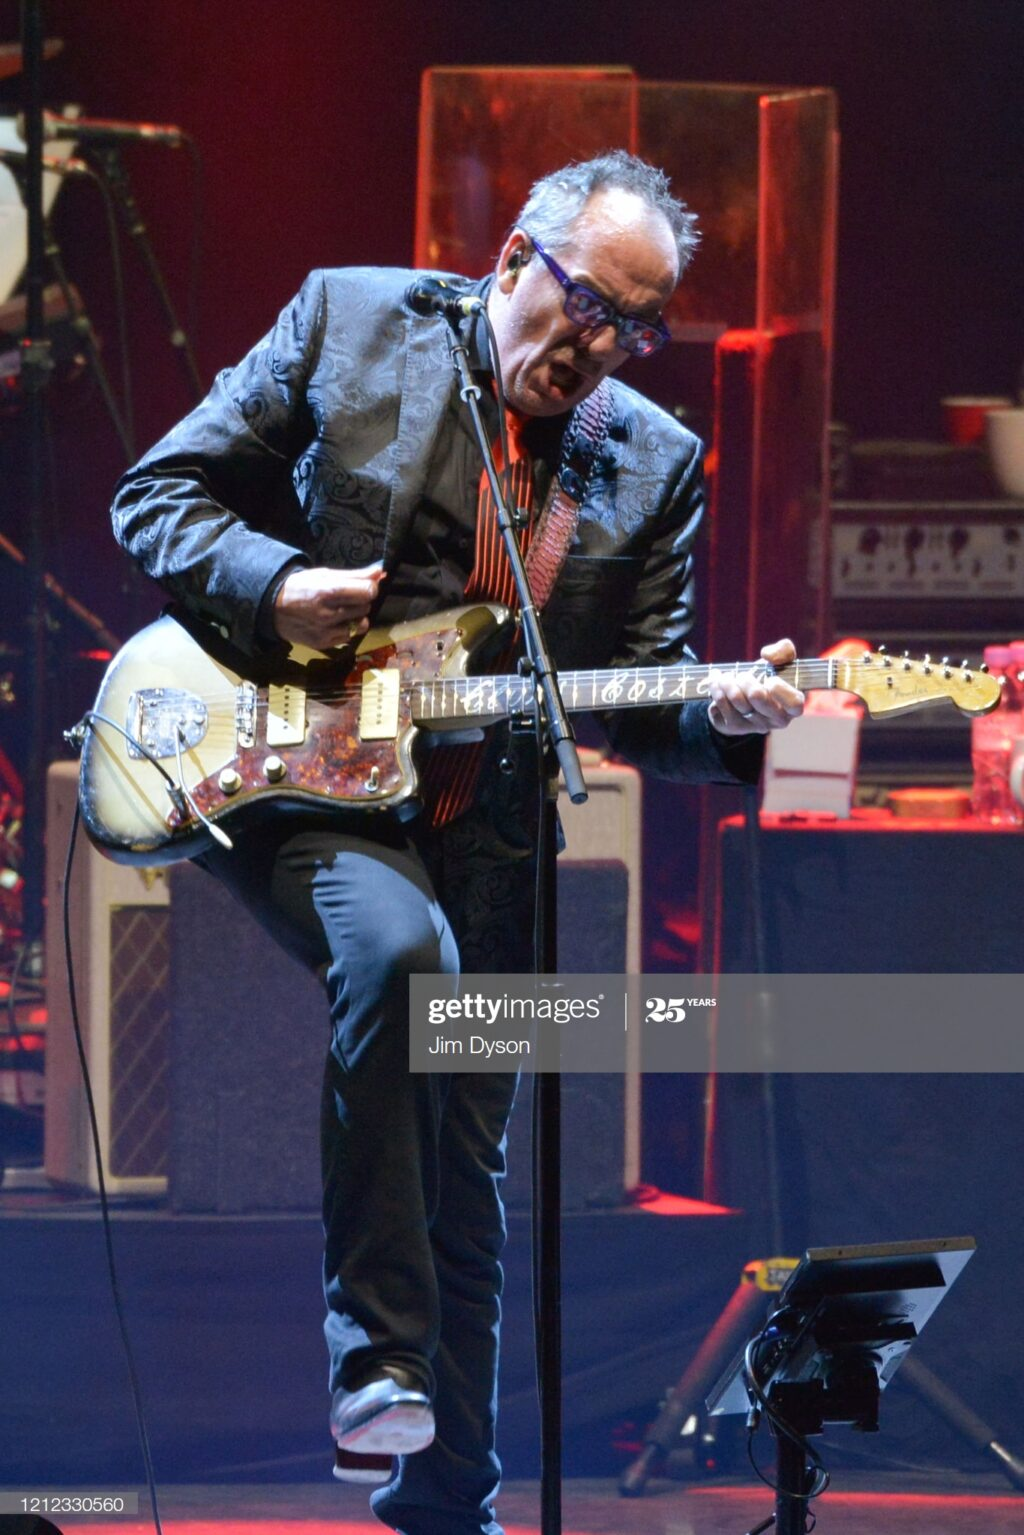 LONDON, ENGLAND - MARCH 13: Elvis Costello performs live on stage with The Imposters, during their 'Just Trust' tour, at Hammersmith Apollo on March 13, 2020 in London, England. (Photo by Jim Dyson/Getty Images)